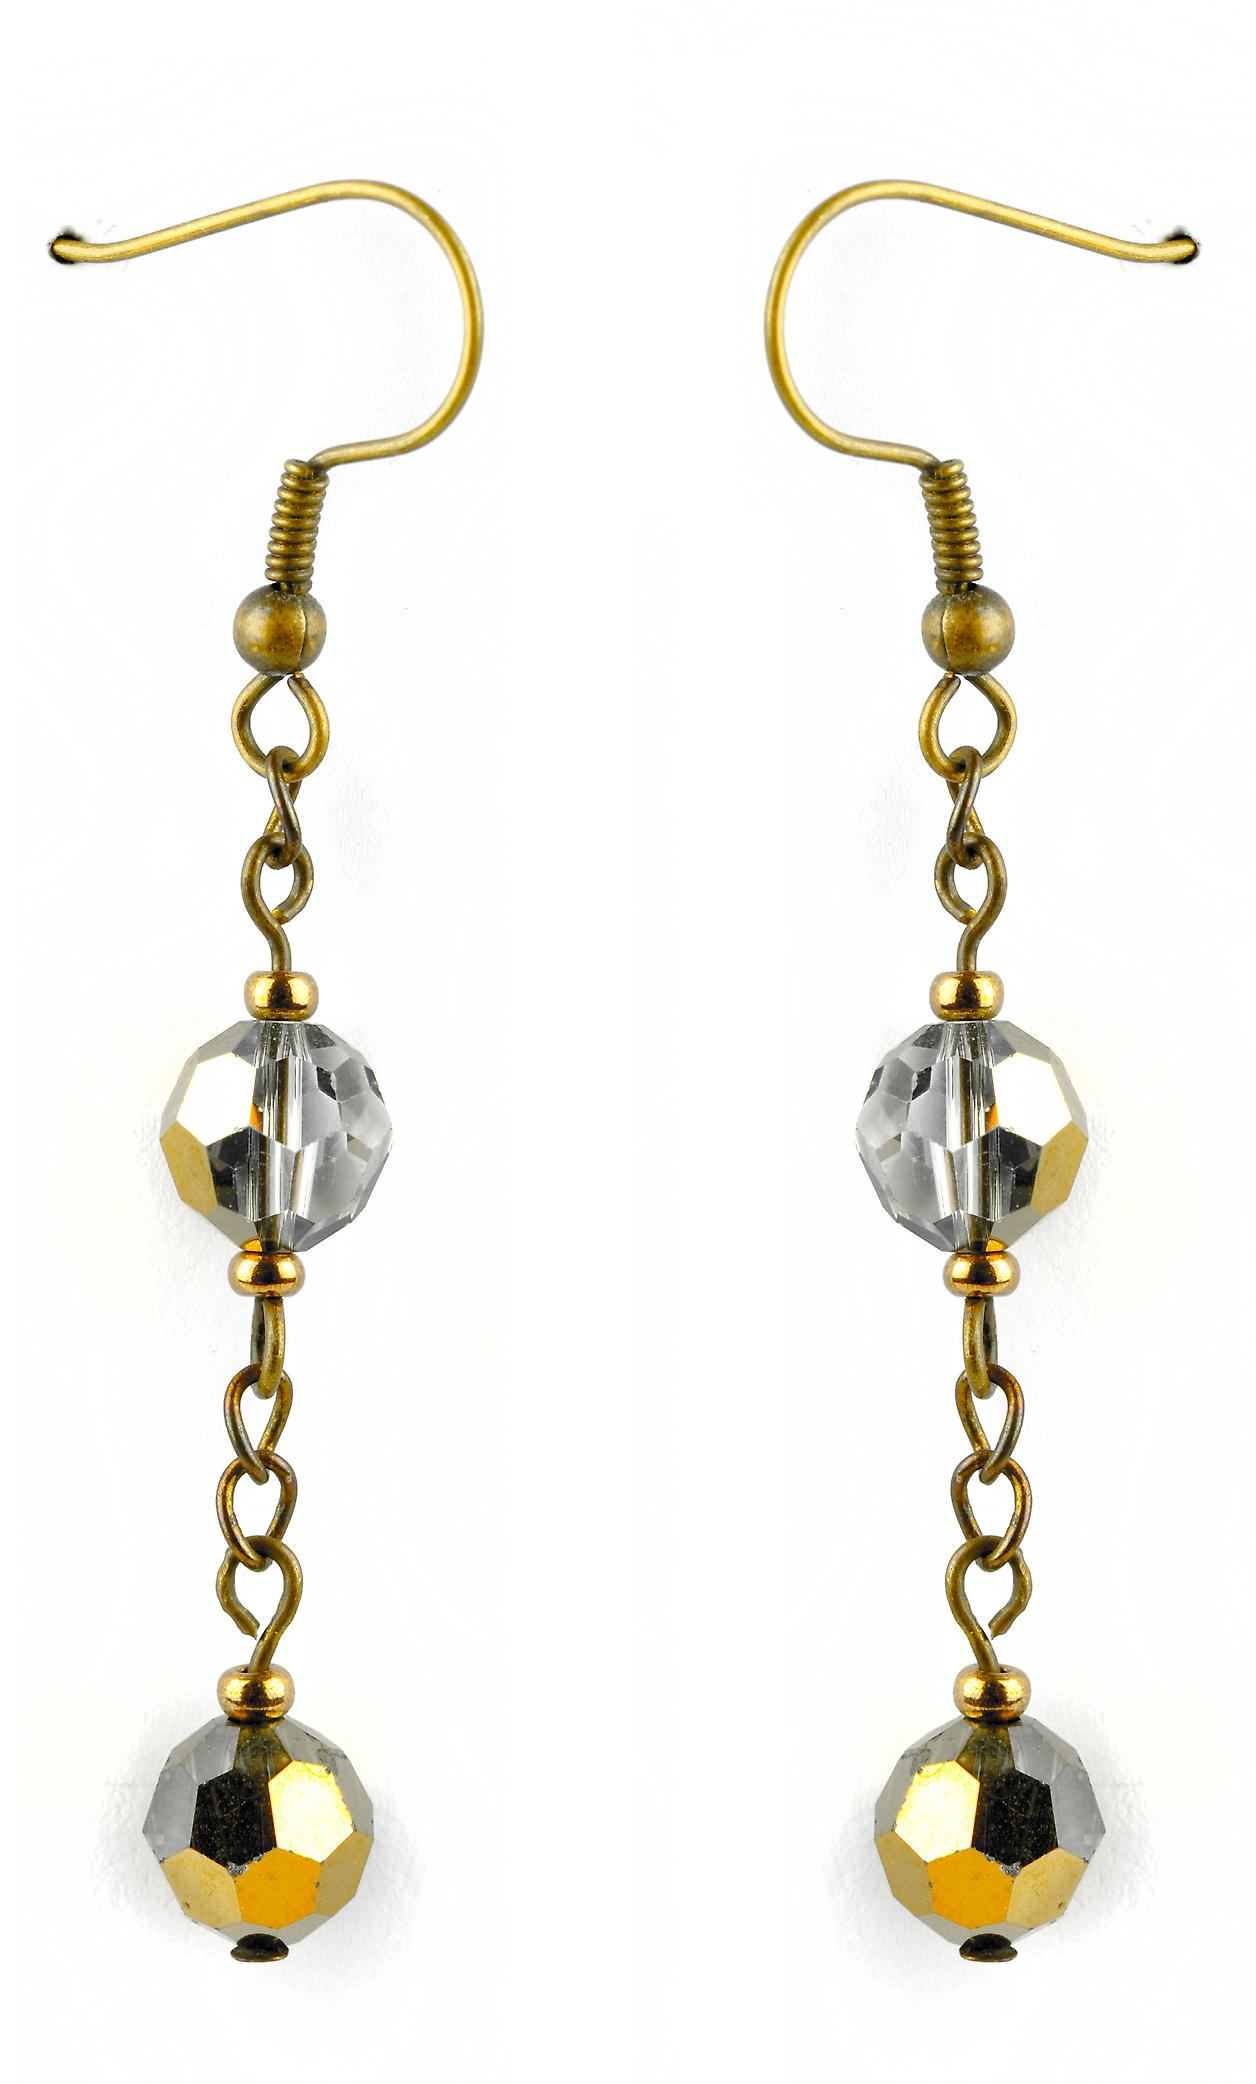 Waooh - Fashion Jewellery - WJ0707 - On Earrings with Swarovski Strass Silver & Gold - Metal Frame Colour Gold